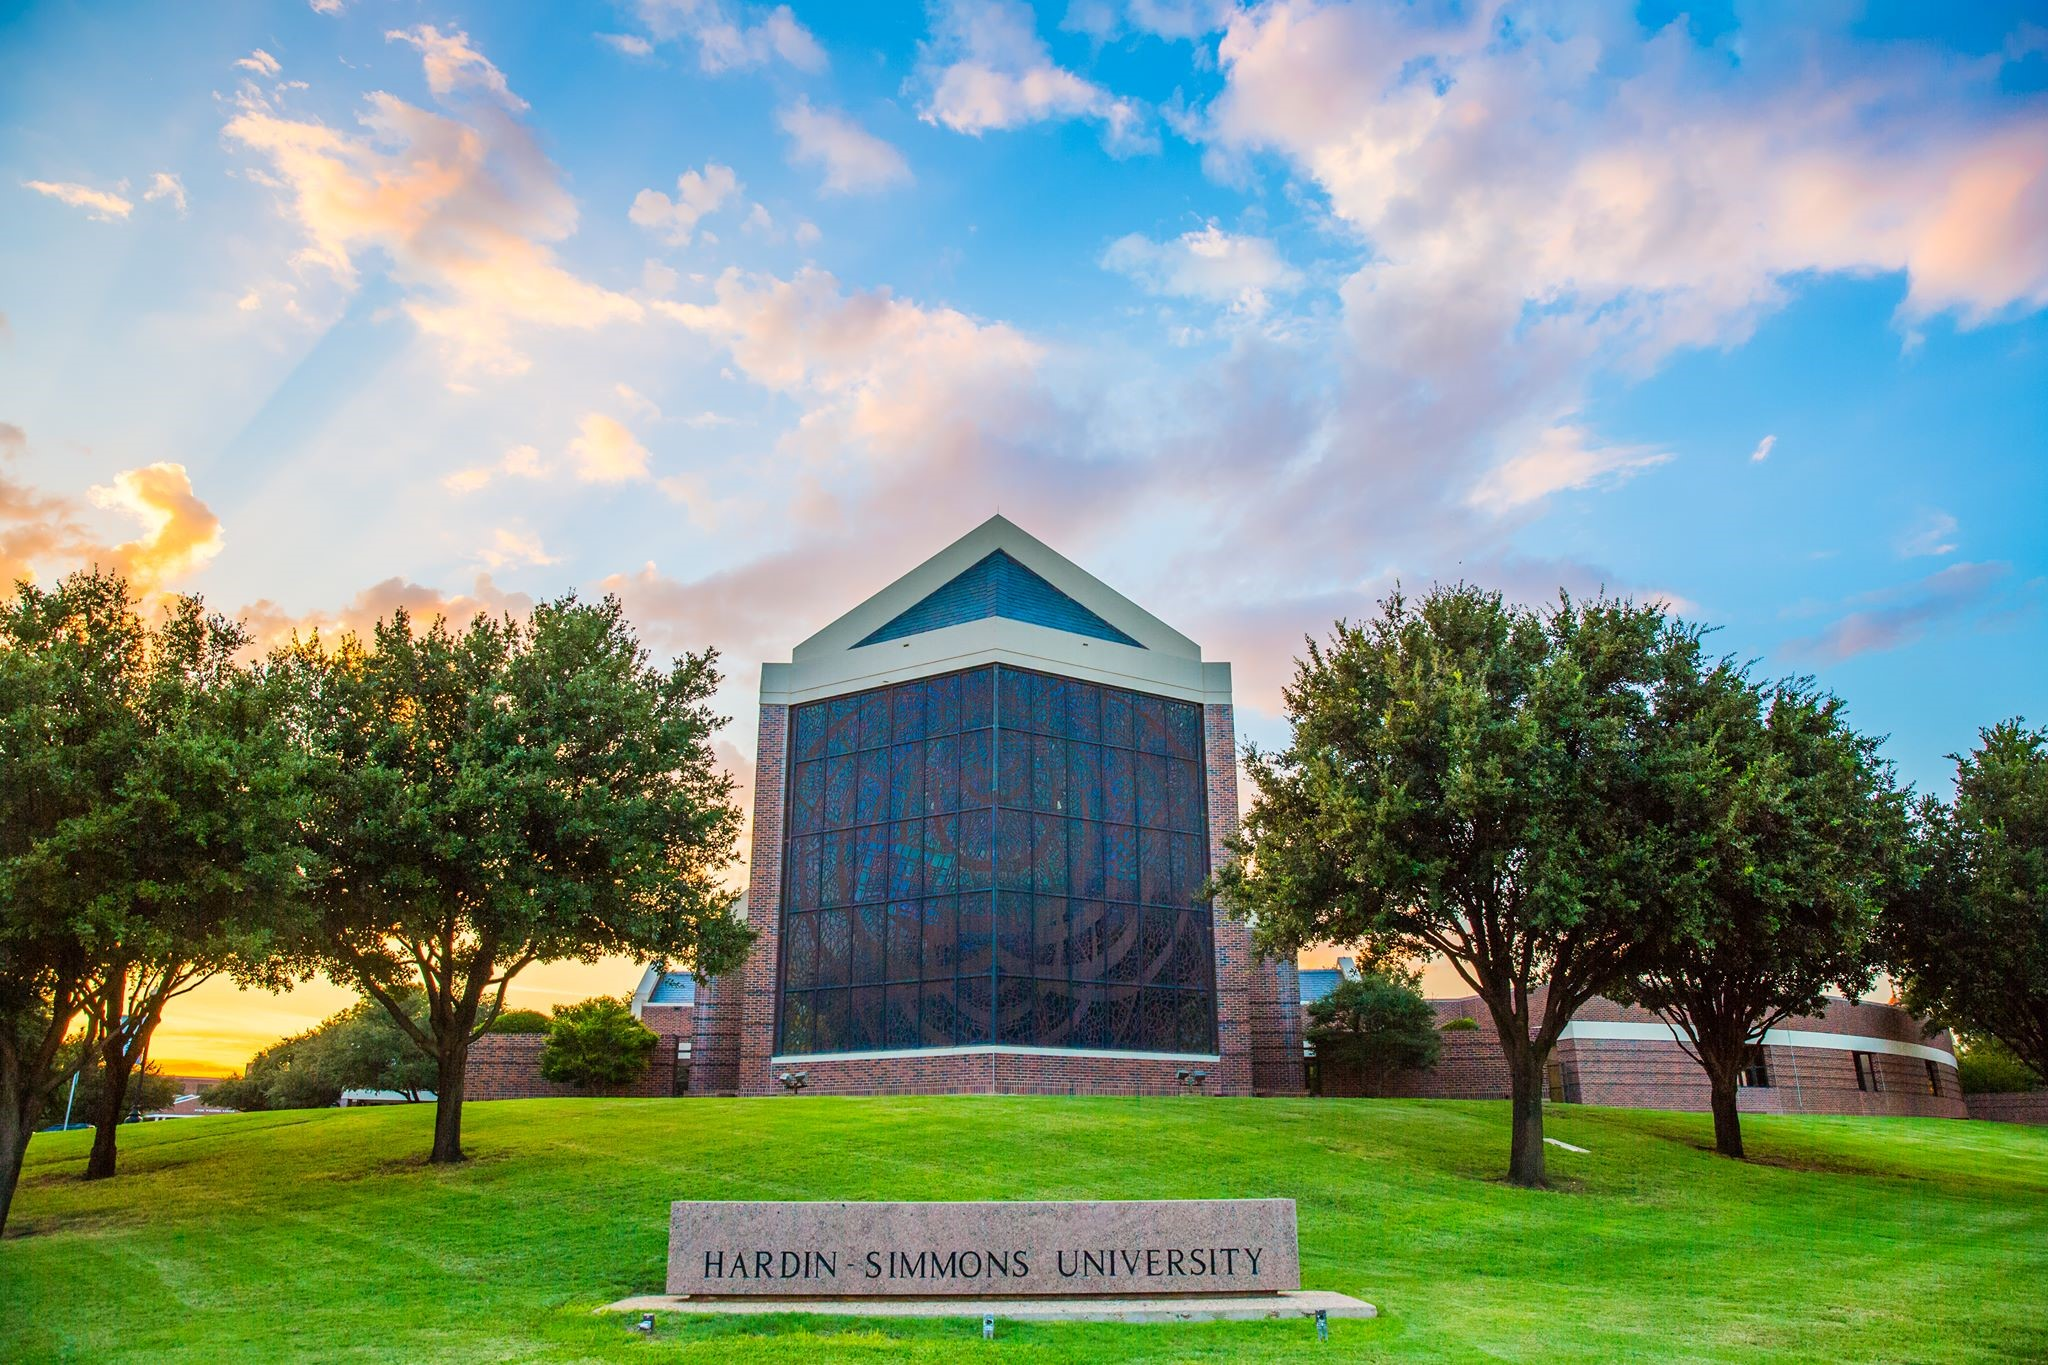 Hardin-Simmons University in Abilene, Texas